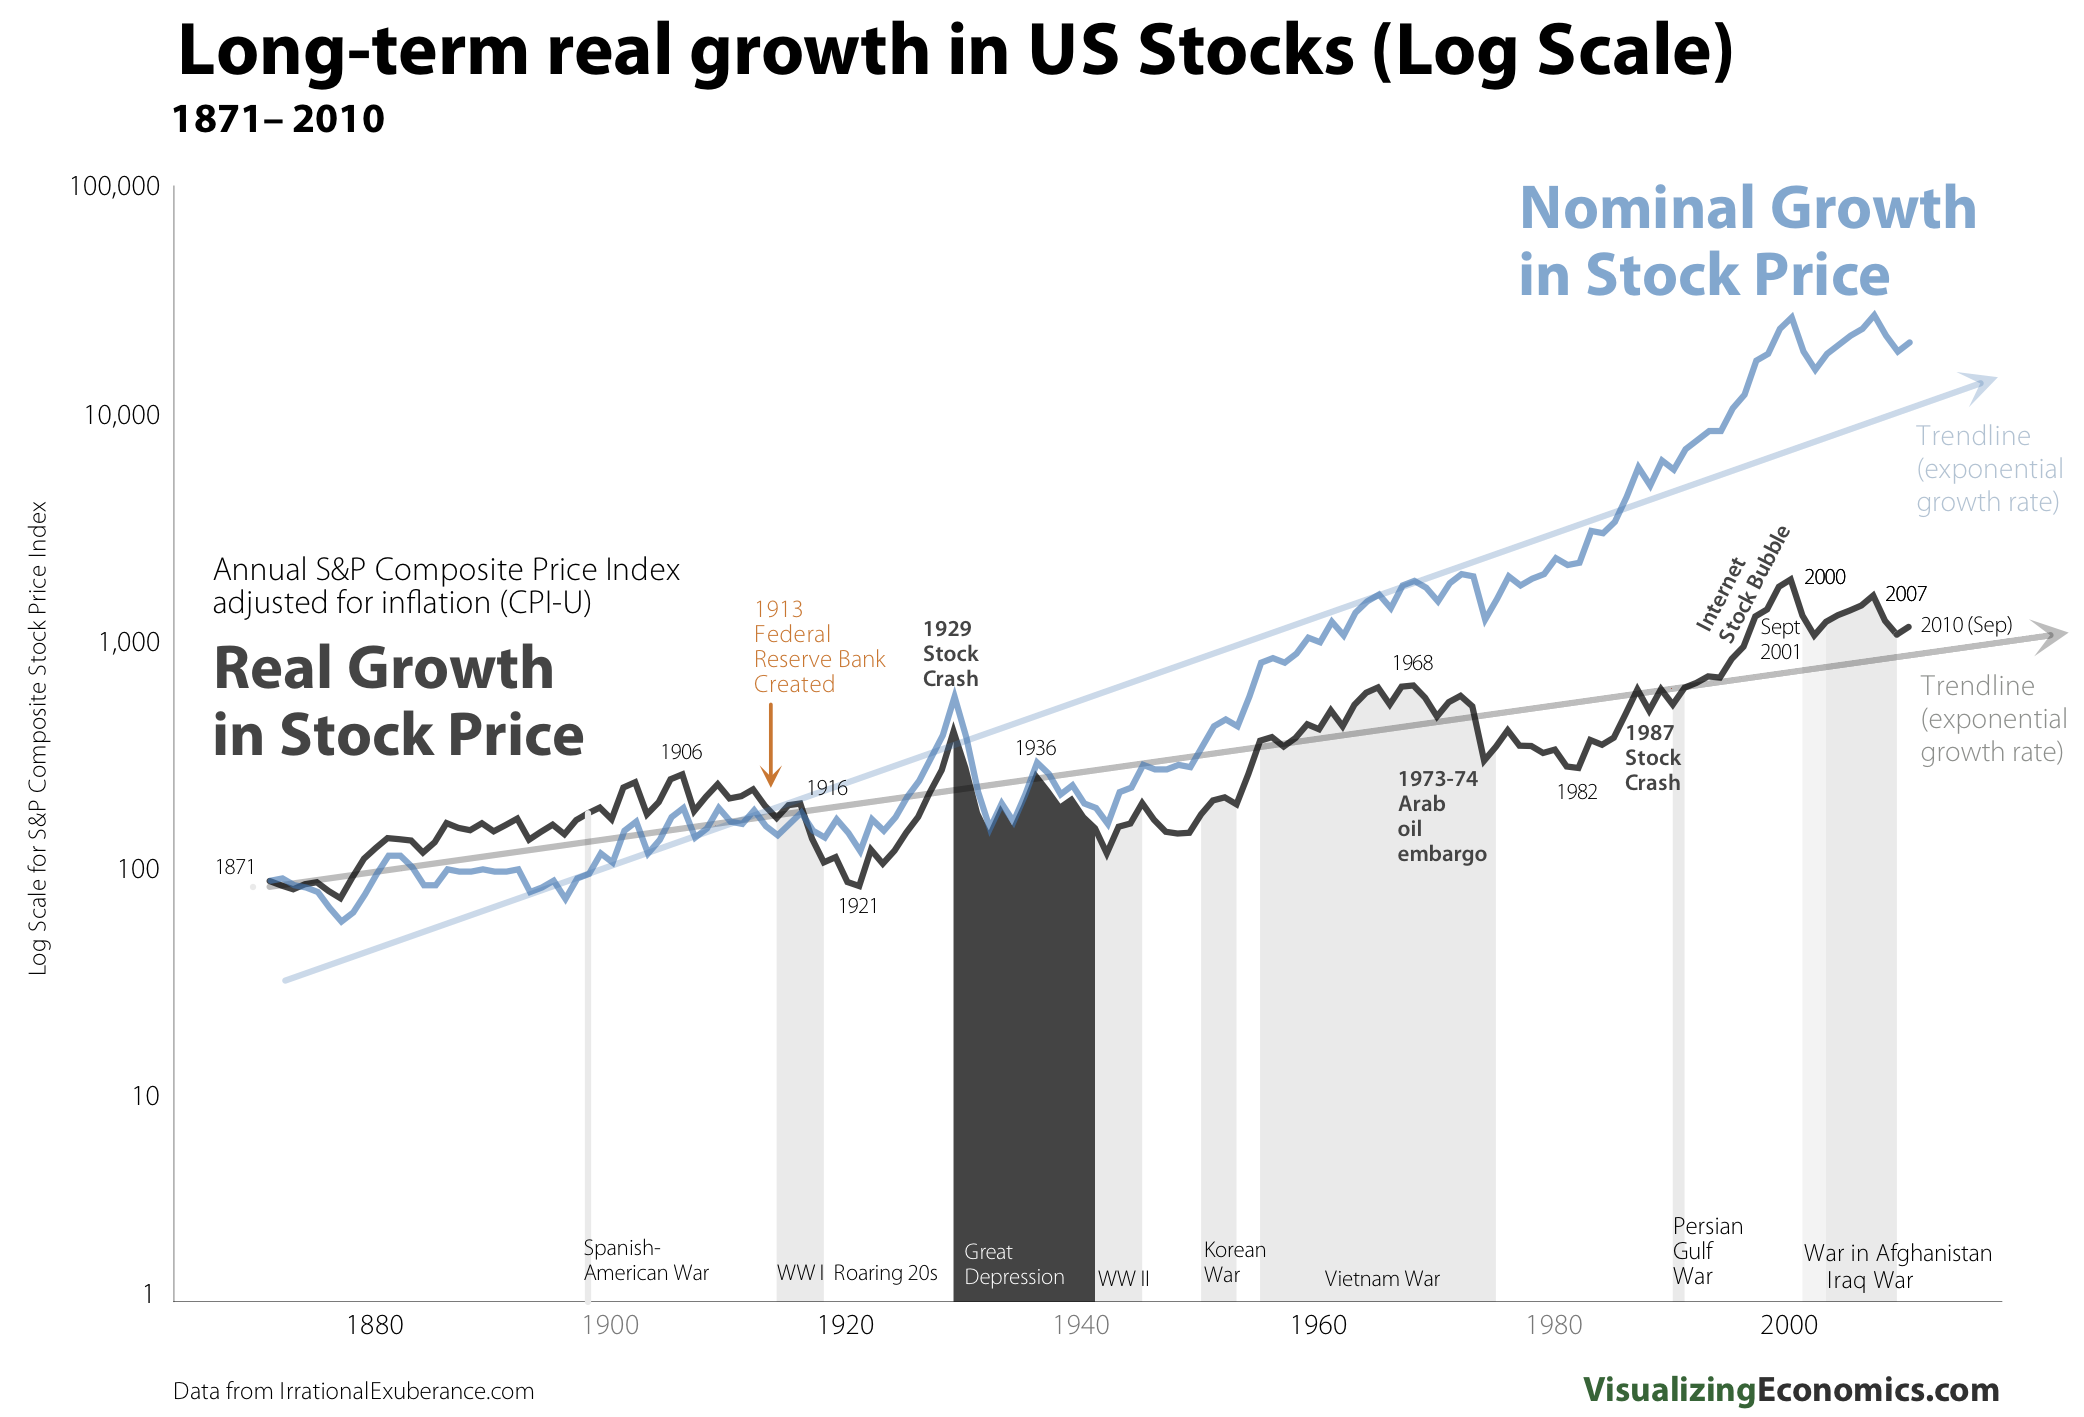 RealNominal_Stock_Growth_Log1.png